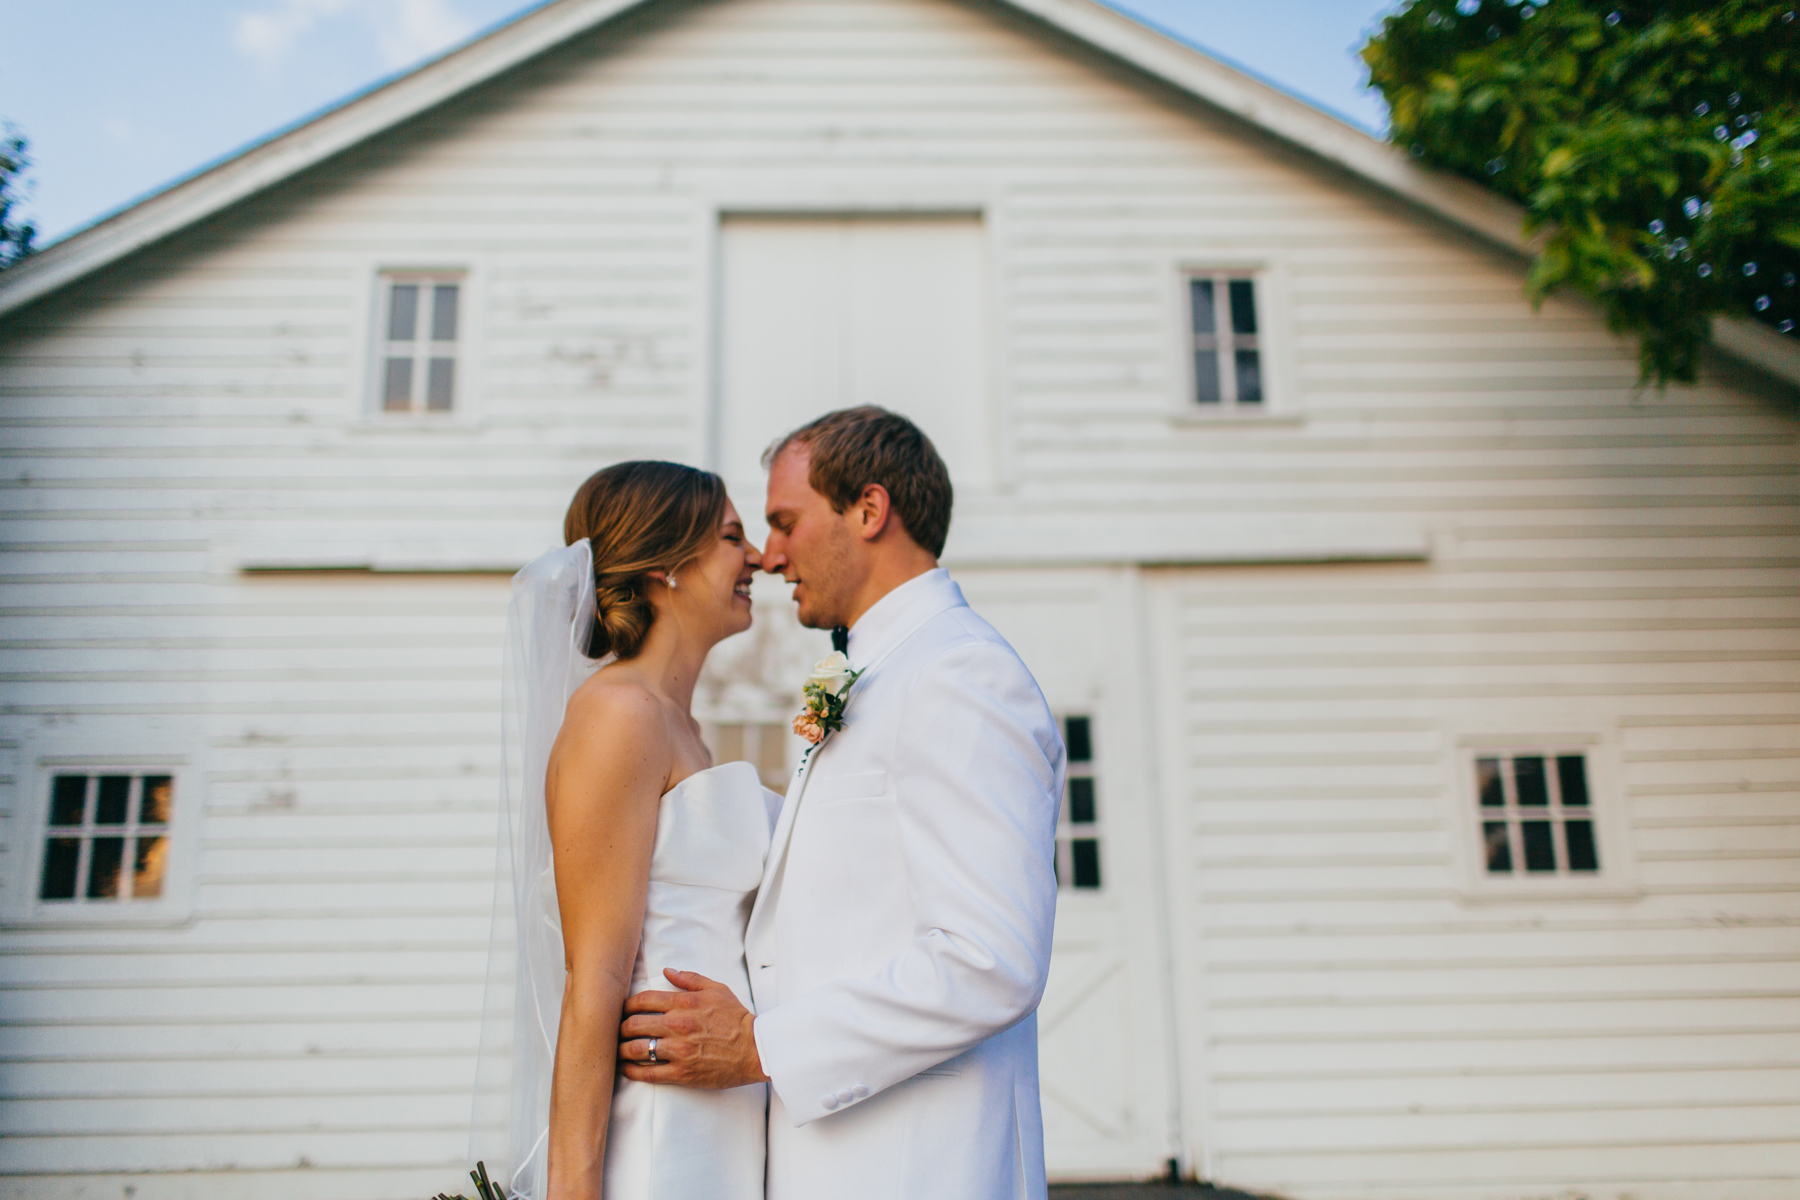 darby house wedding -  jessica love photography-63.jpg